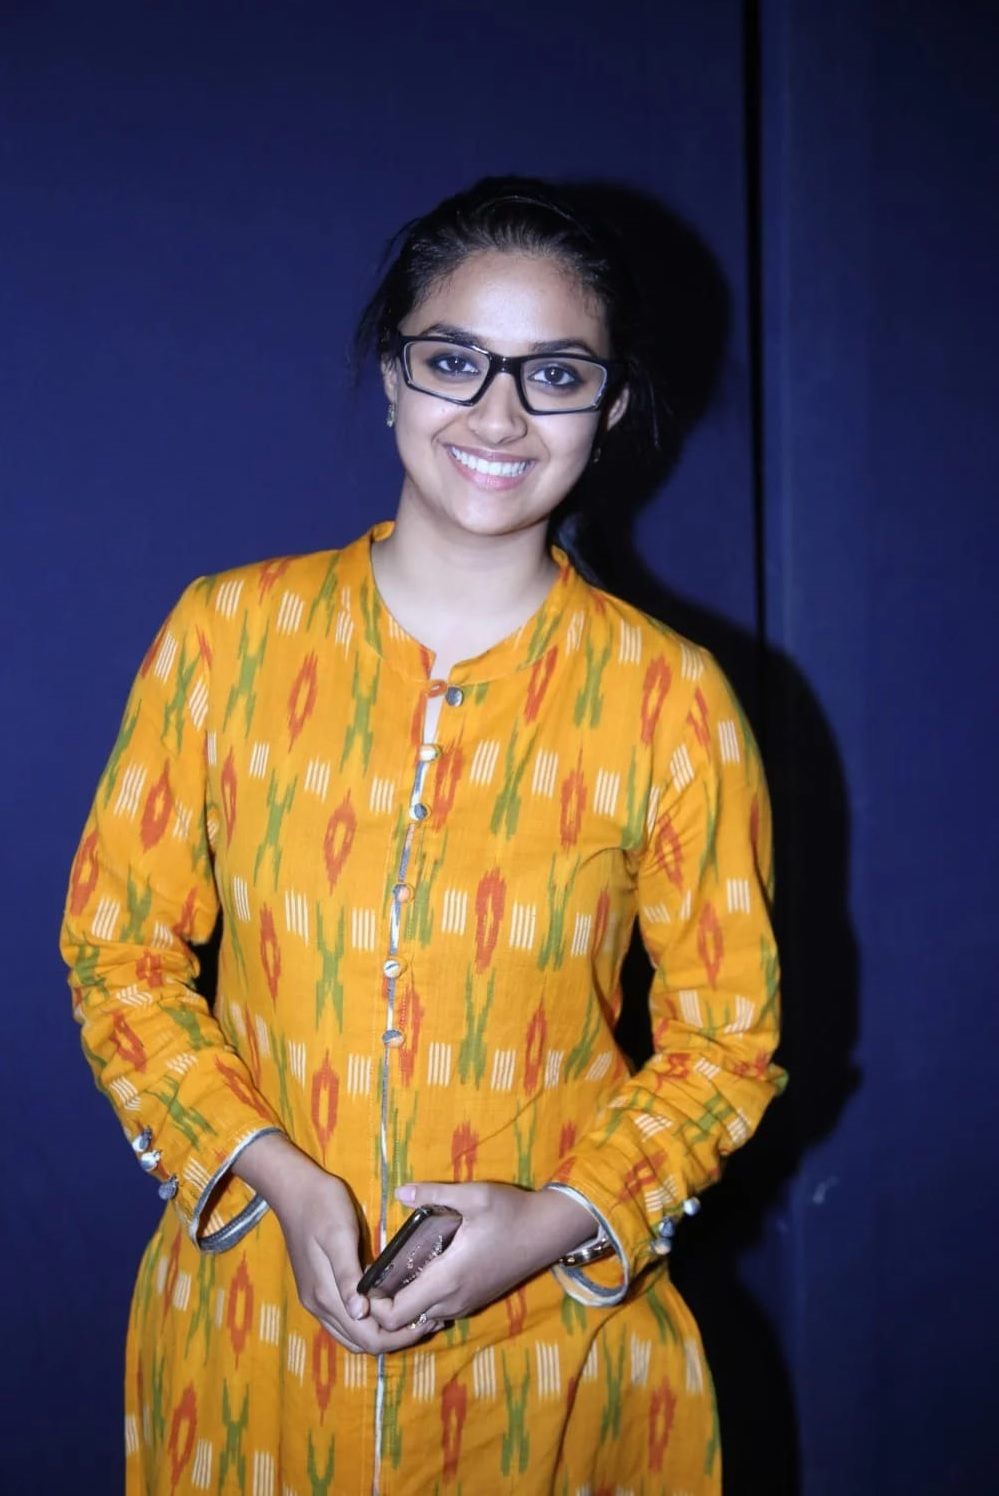 548e5cdc853 Keerthy Suresh in Yellow Dress with Cute and Lovely Smile